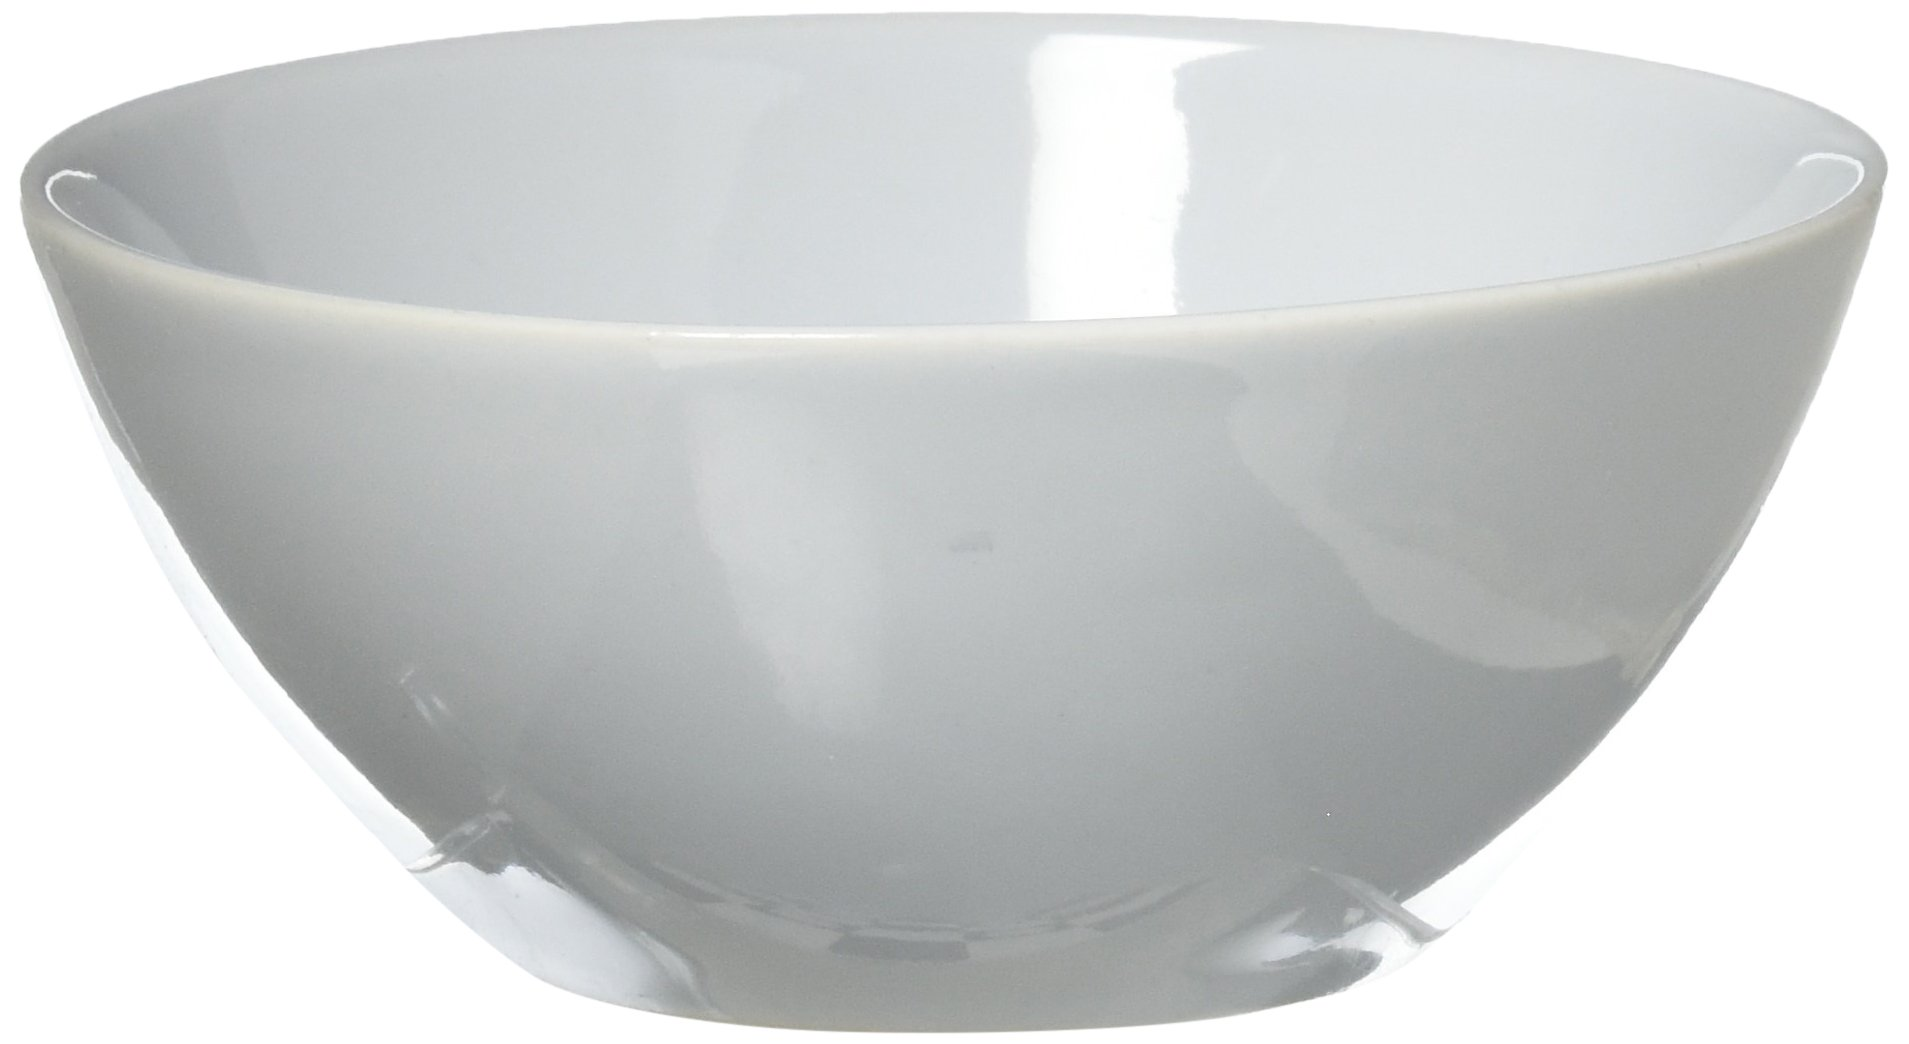 Lenox Alvarado Nut Bowl, Gold